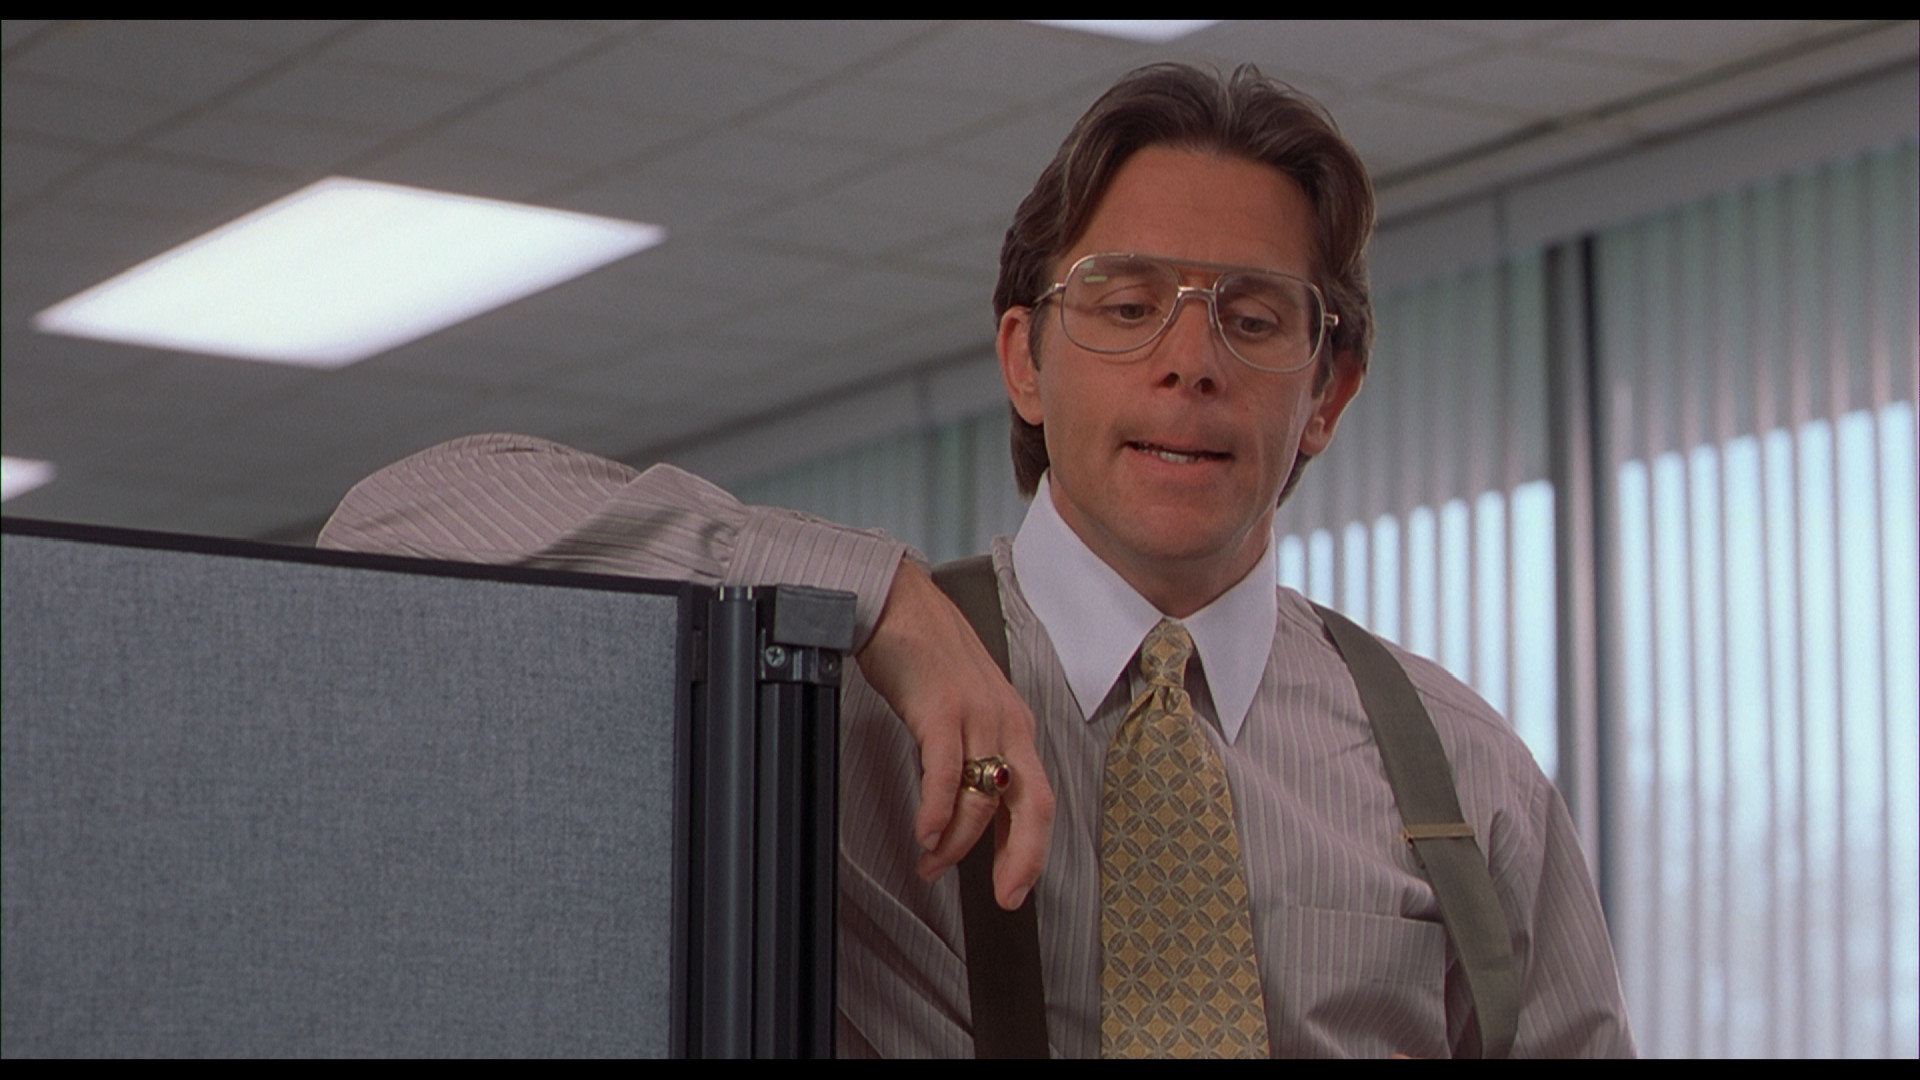 Office Space Wallpapers 1920x1080 Full Hd 1080p Desktop Backgrounds